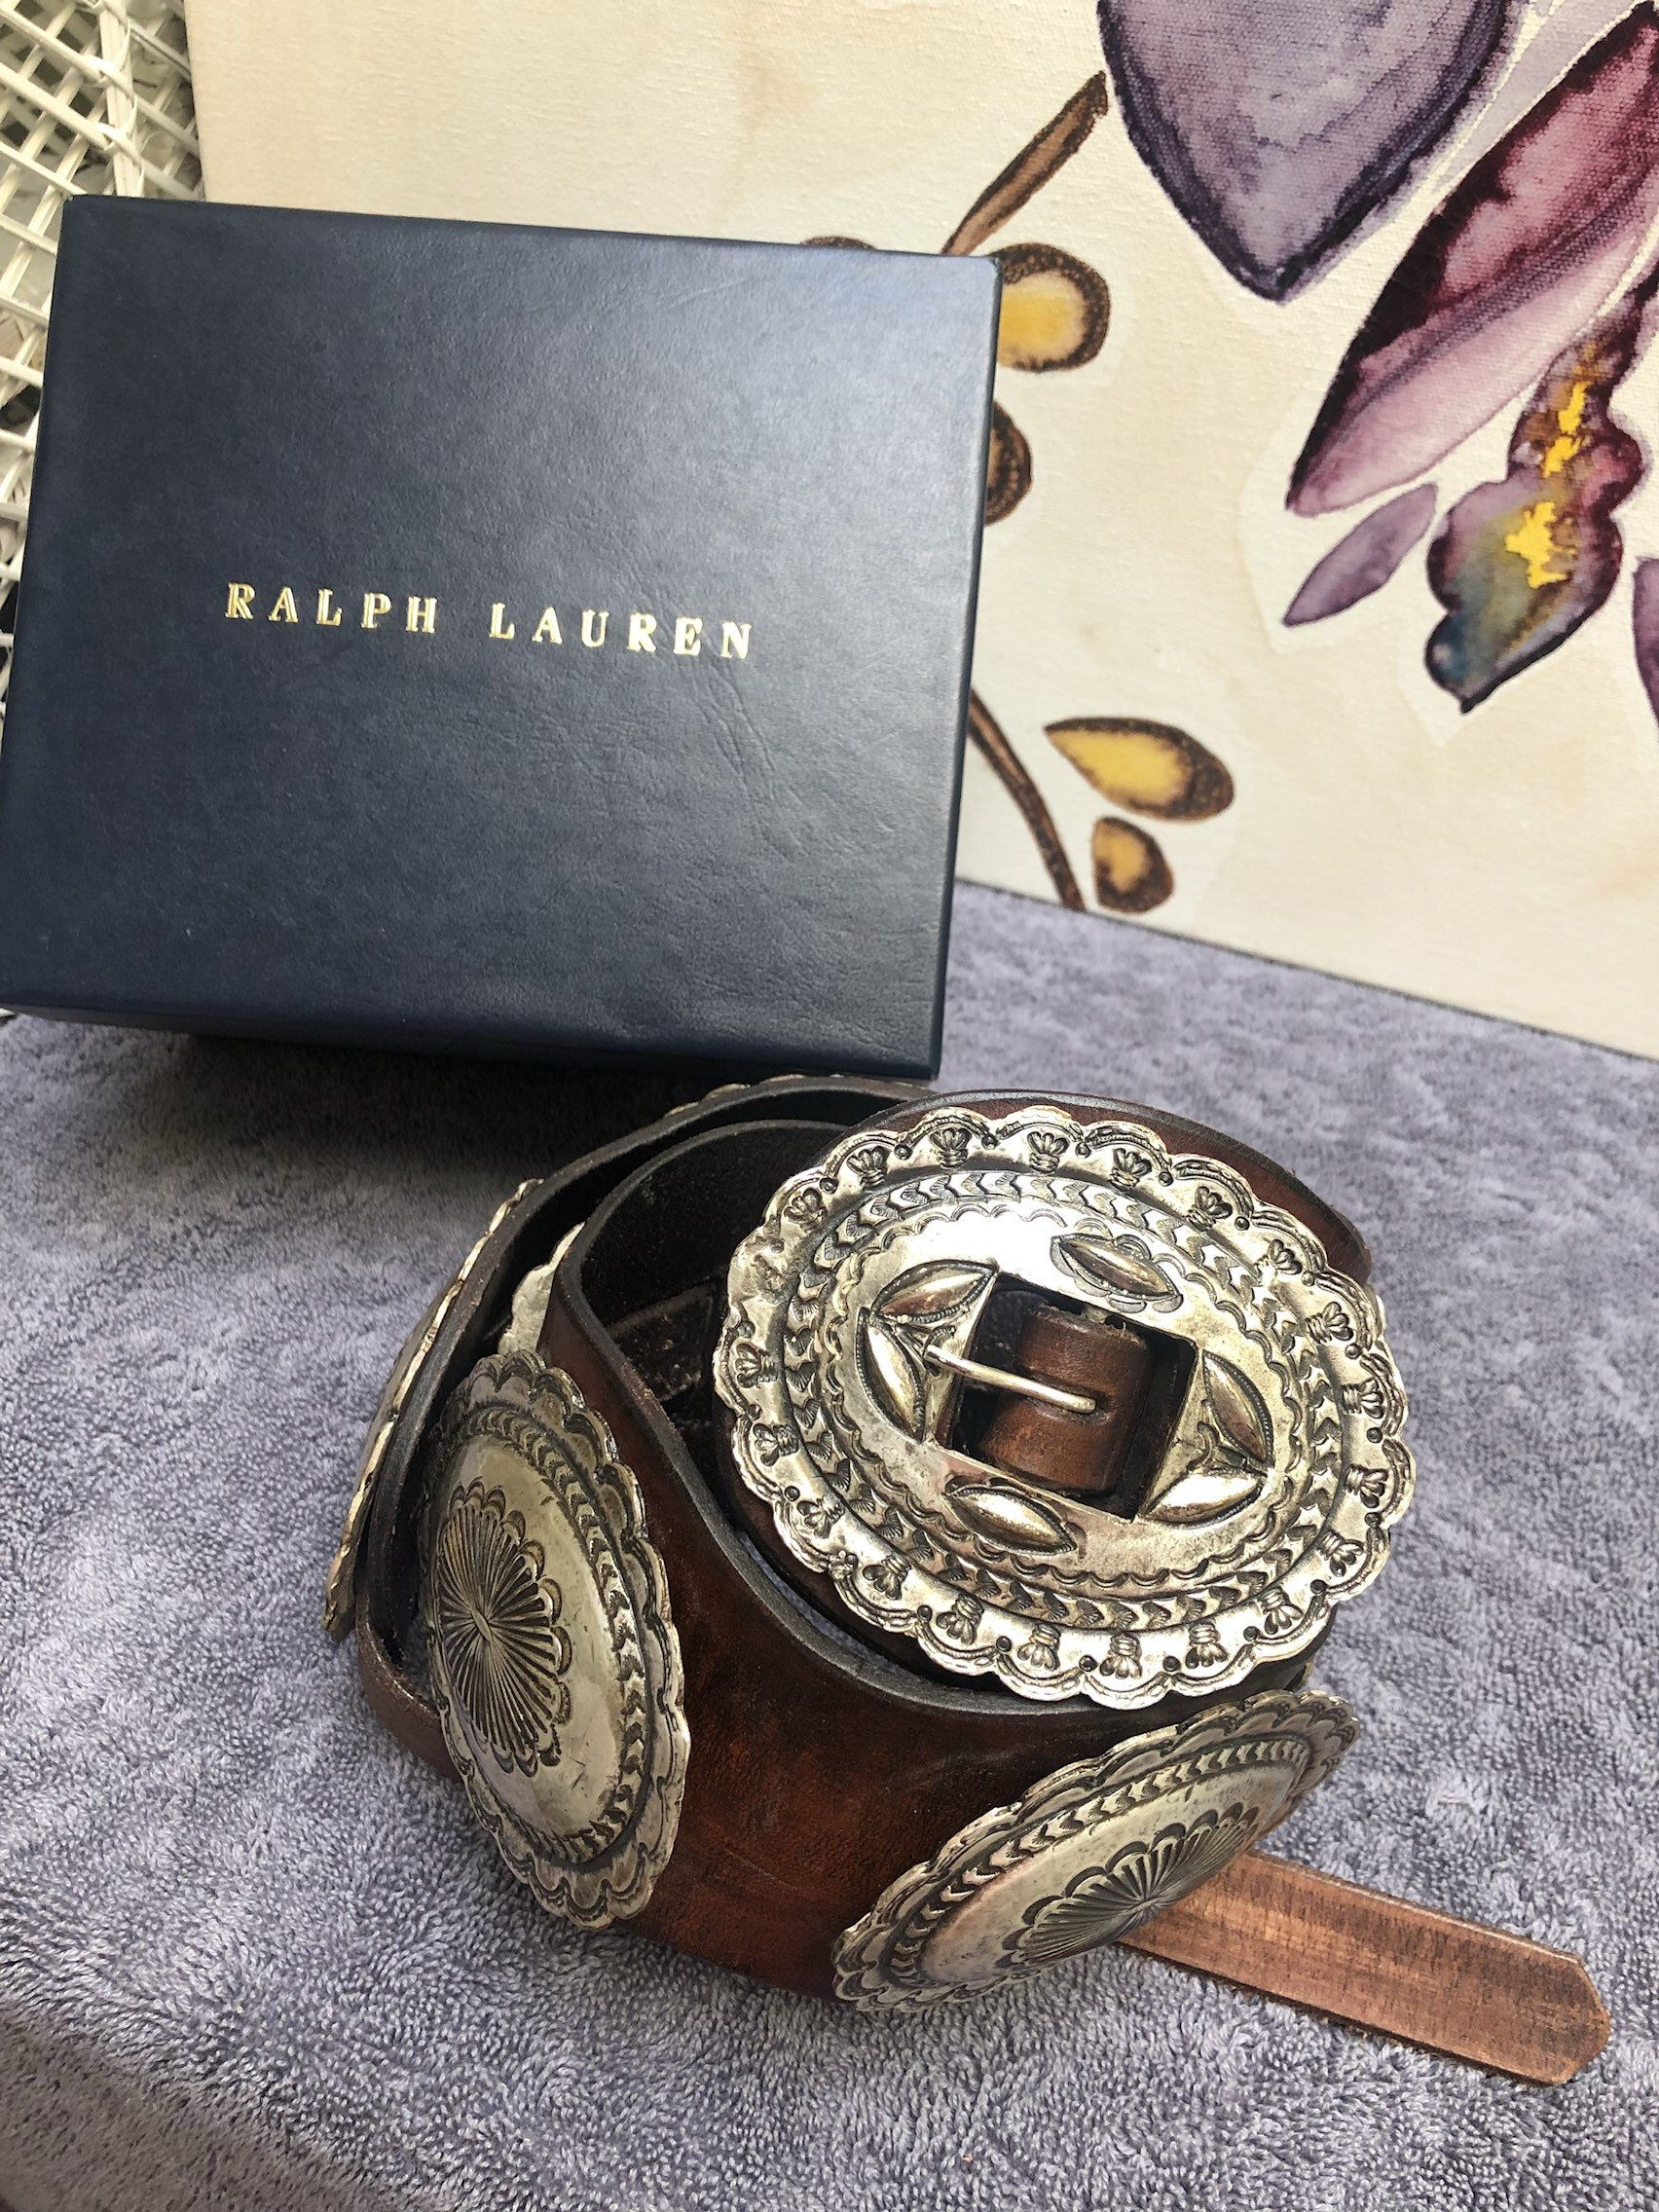 Excited to share this item from my #etsy shop: Ralph Lauren